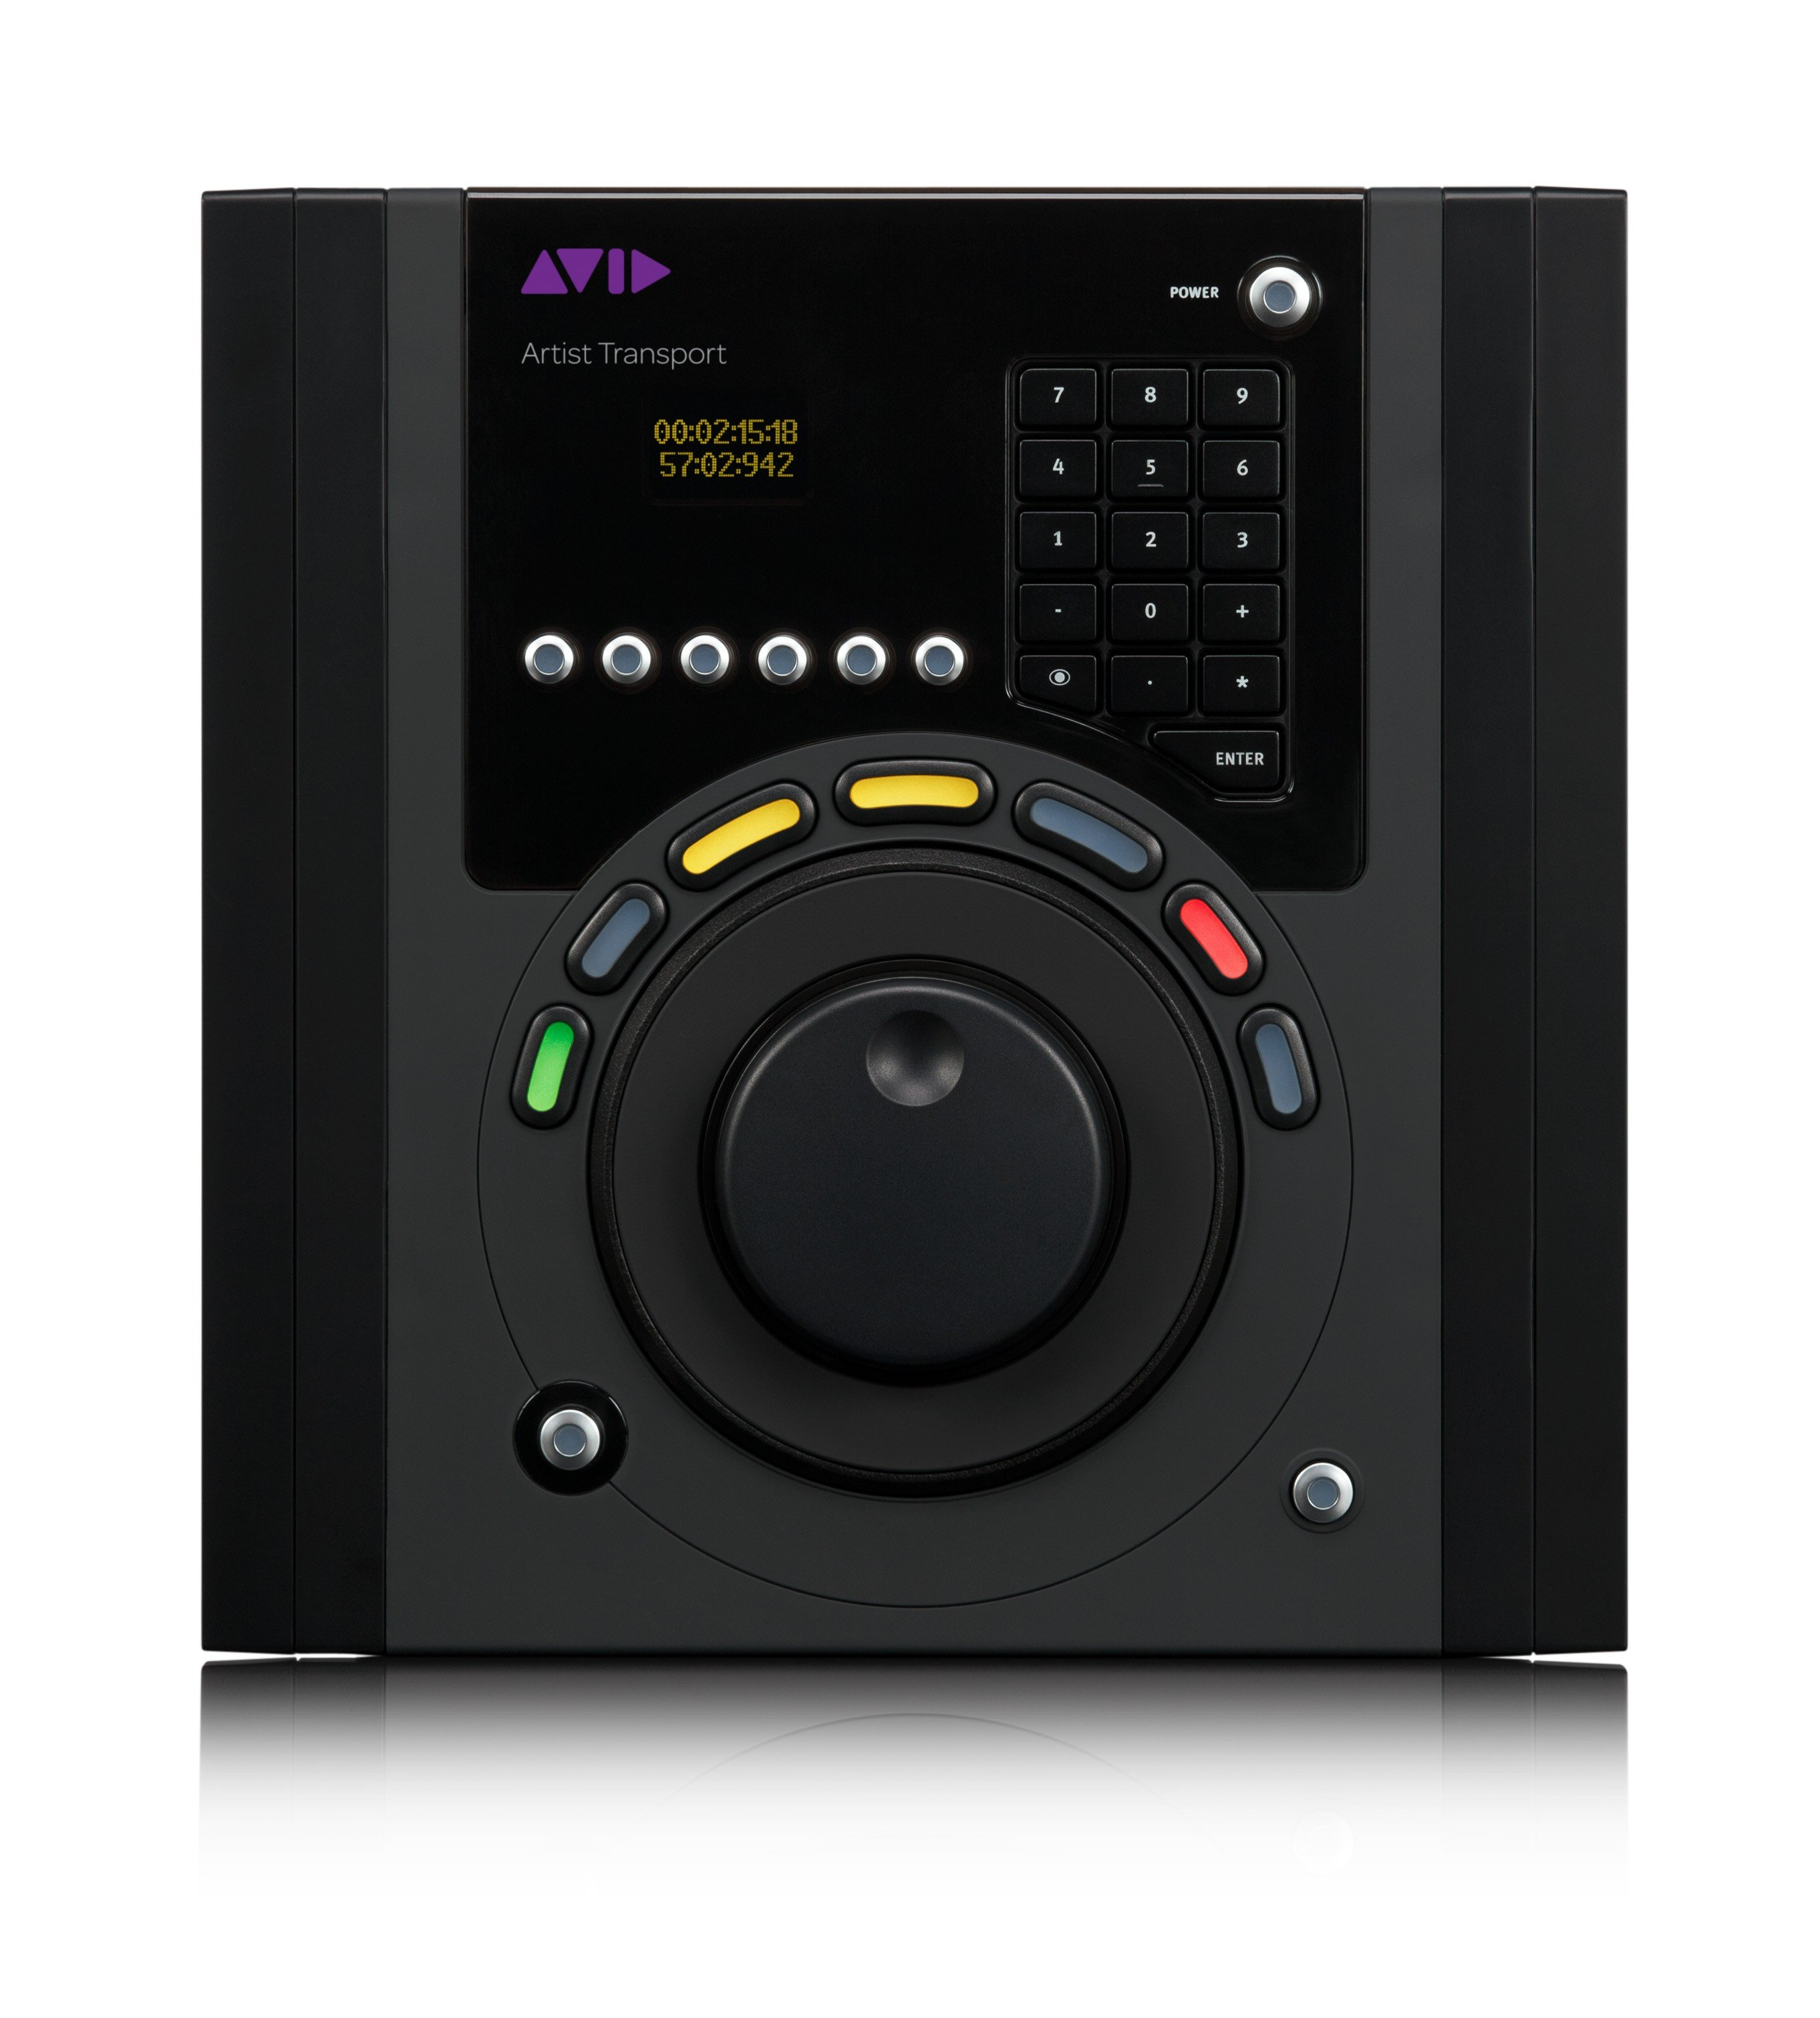 Avid Artist Transport Discontinued / EOL - Is This The End Of The Artist Series?